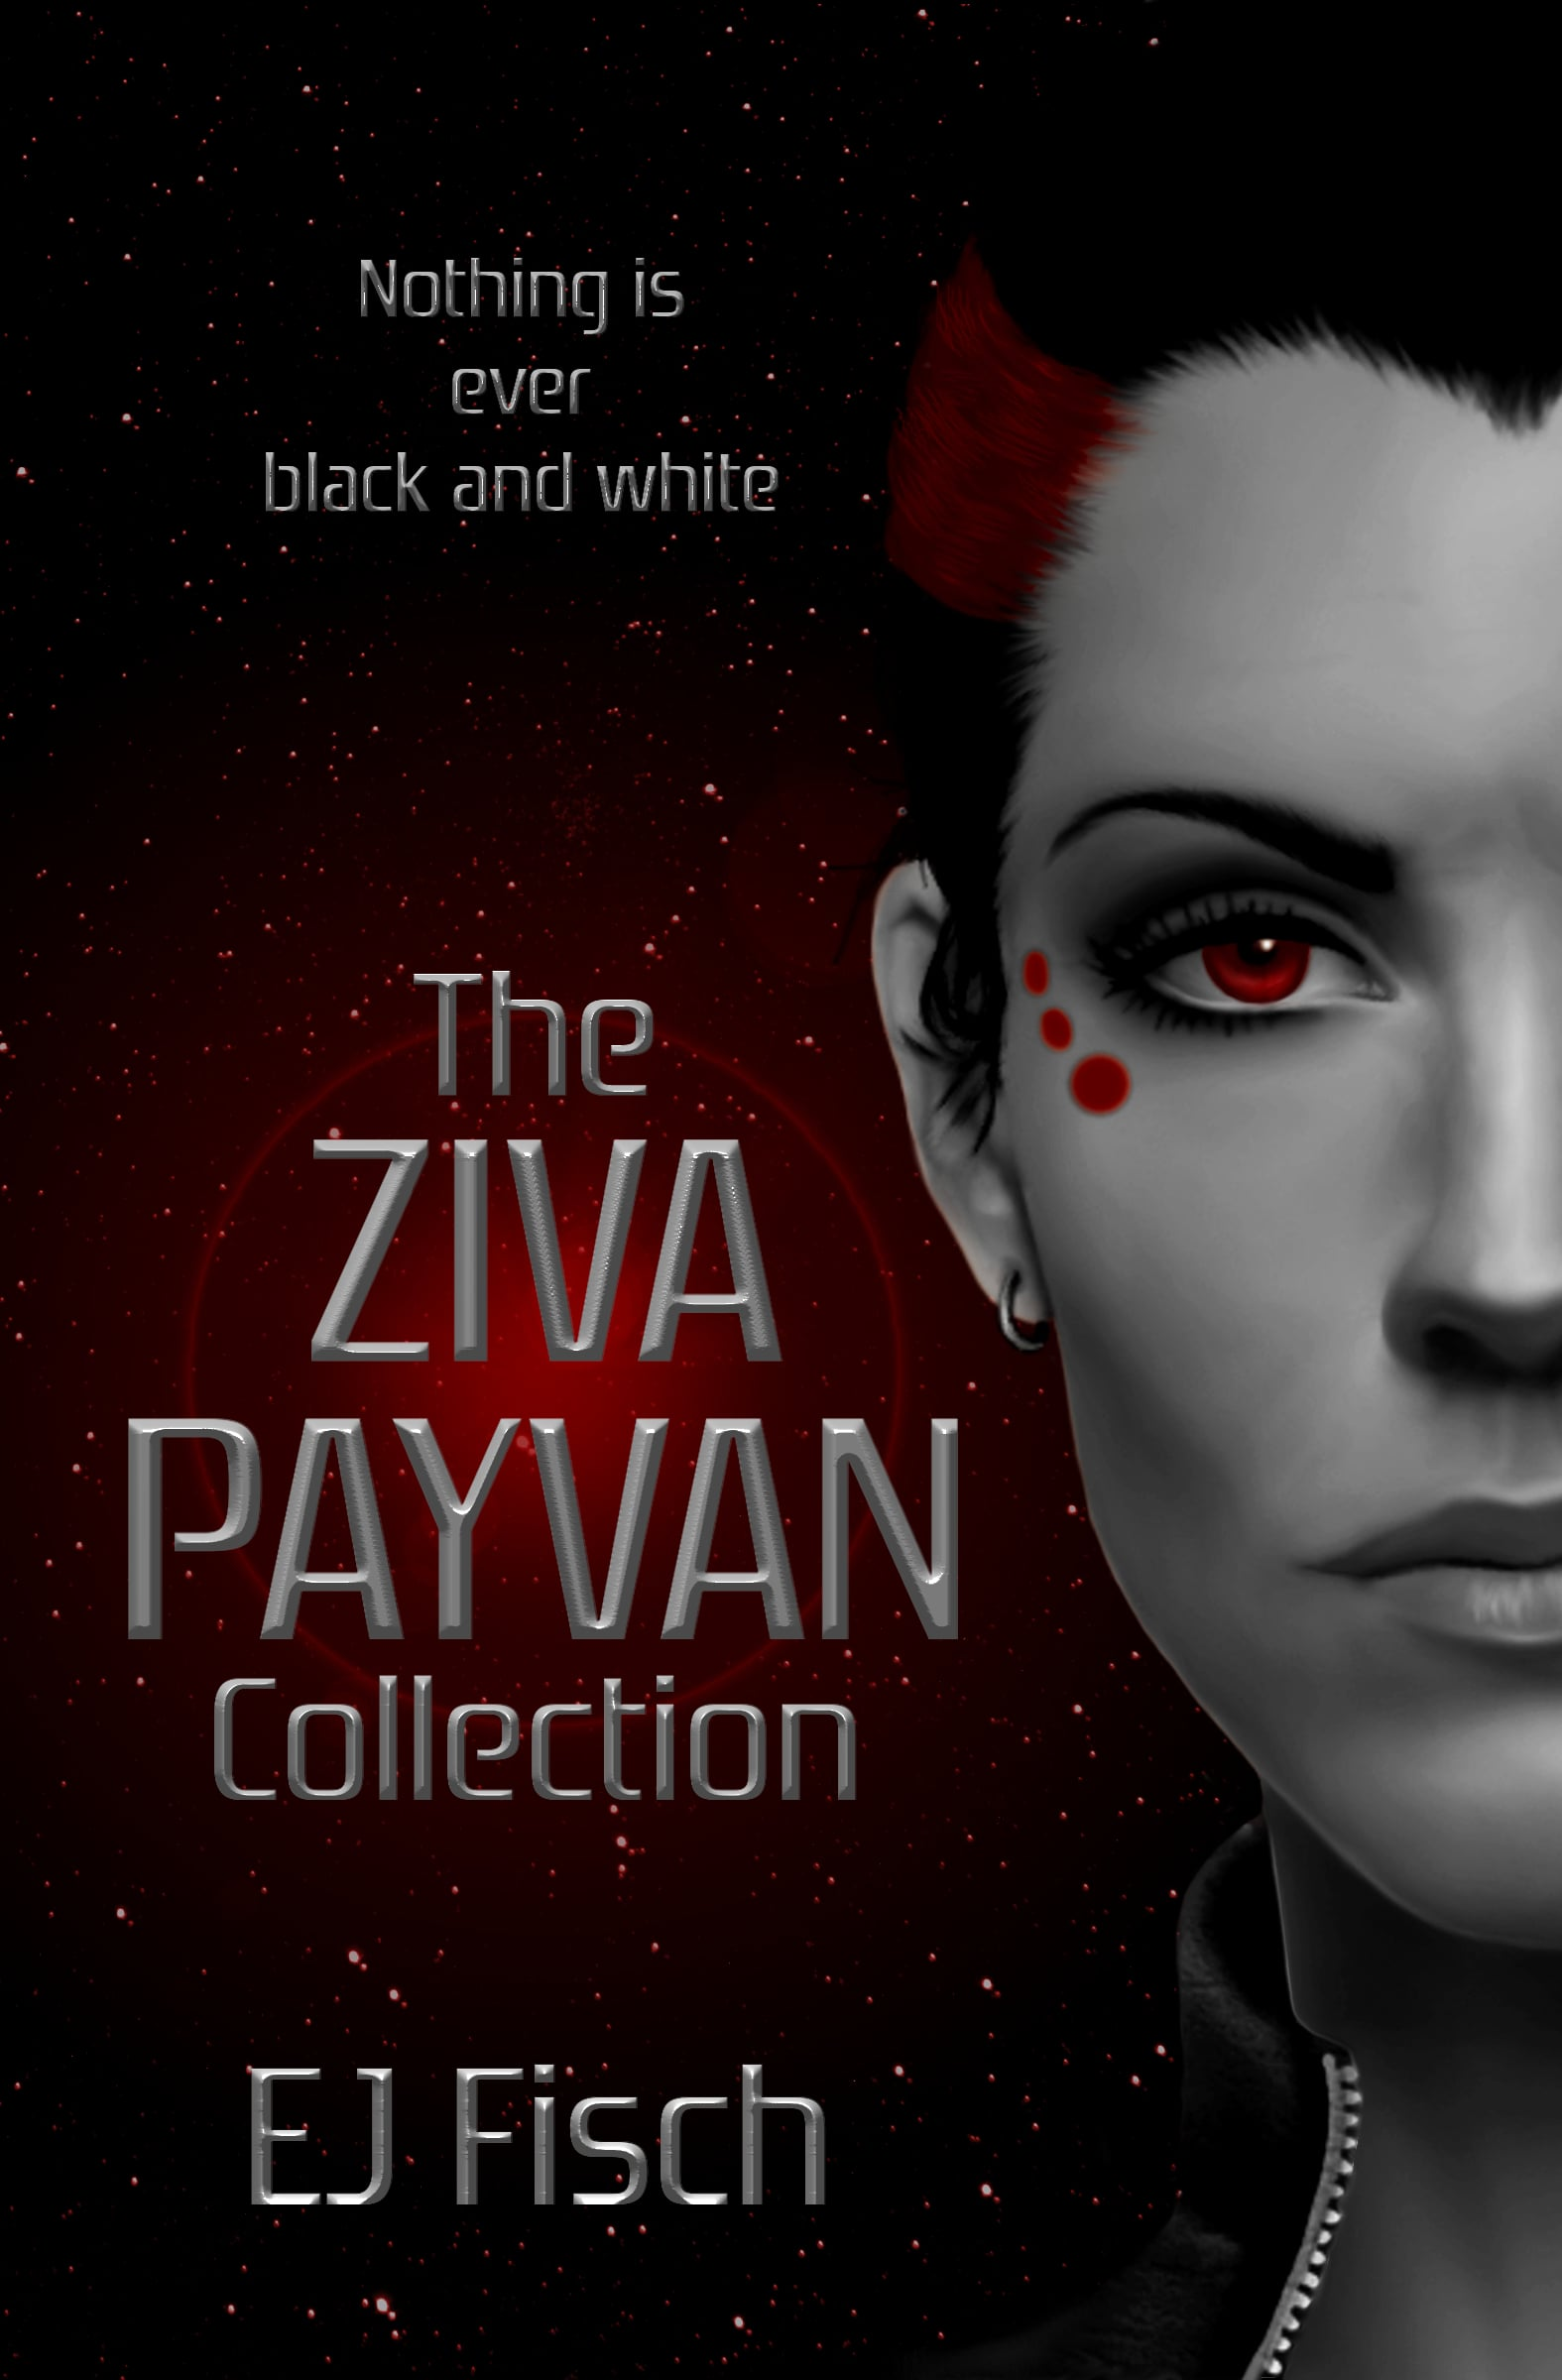 The Ziva Payvan Collection Cover (Old)